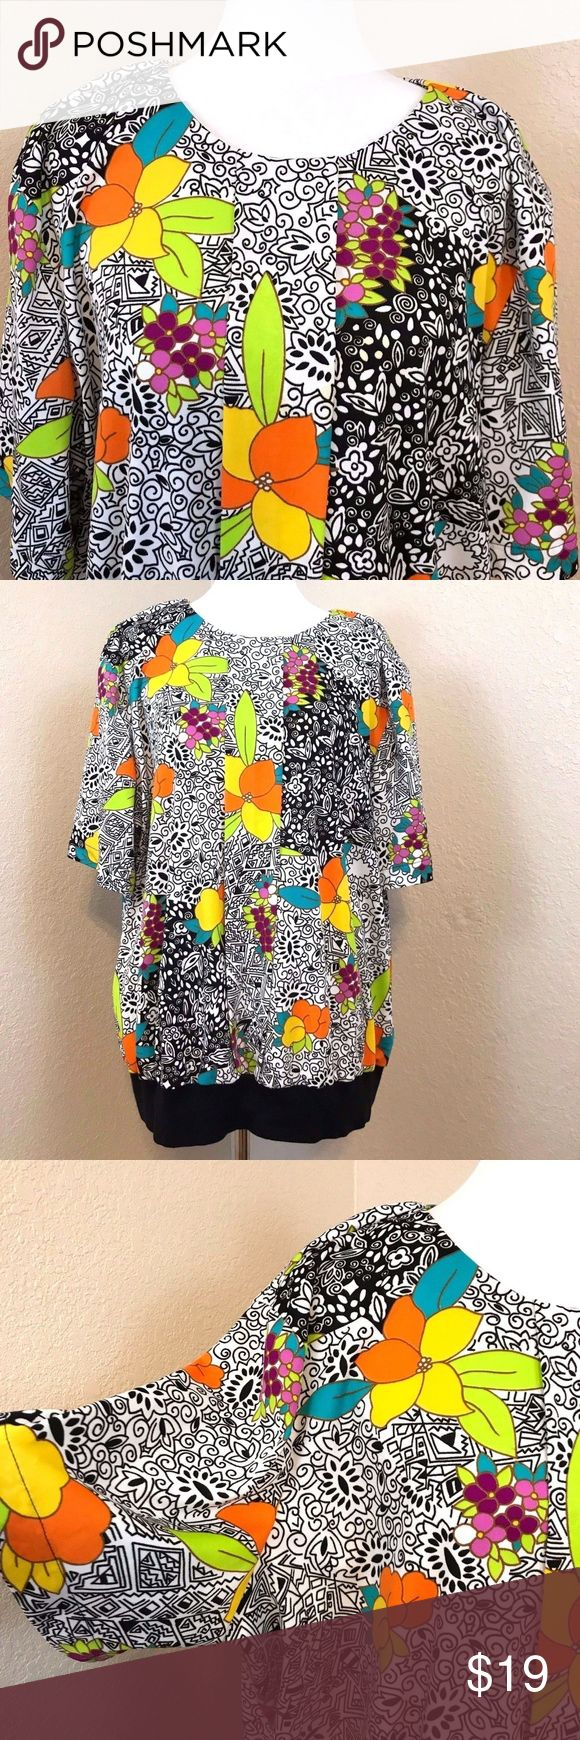 """Vintage Plus Size Flower Power Blouse Made in USA Vintage Top Notch Brand, Made in the U.S.A. . Pretty blouse with bright flowers on a black and white background.  100% polyester makes this top soft and wrinkle free with some stretch.  Button closure at back of neckline.  Size tag reads 46 / 26W which should be equivalent to a 4X  but PLEASE see measurements below.   Chest: Underarm to underarm 28"""" Waist:  Side seam to side seam across the front:  30"""" Length: 28""""   No holes, rips, stains or…"""